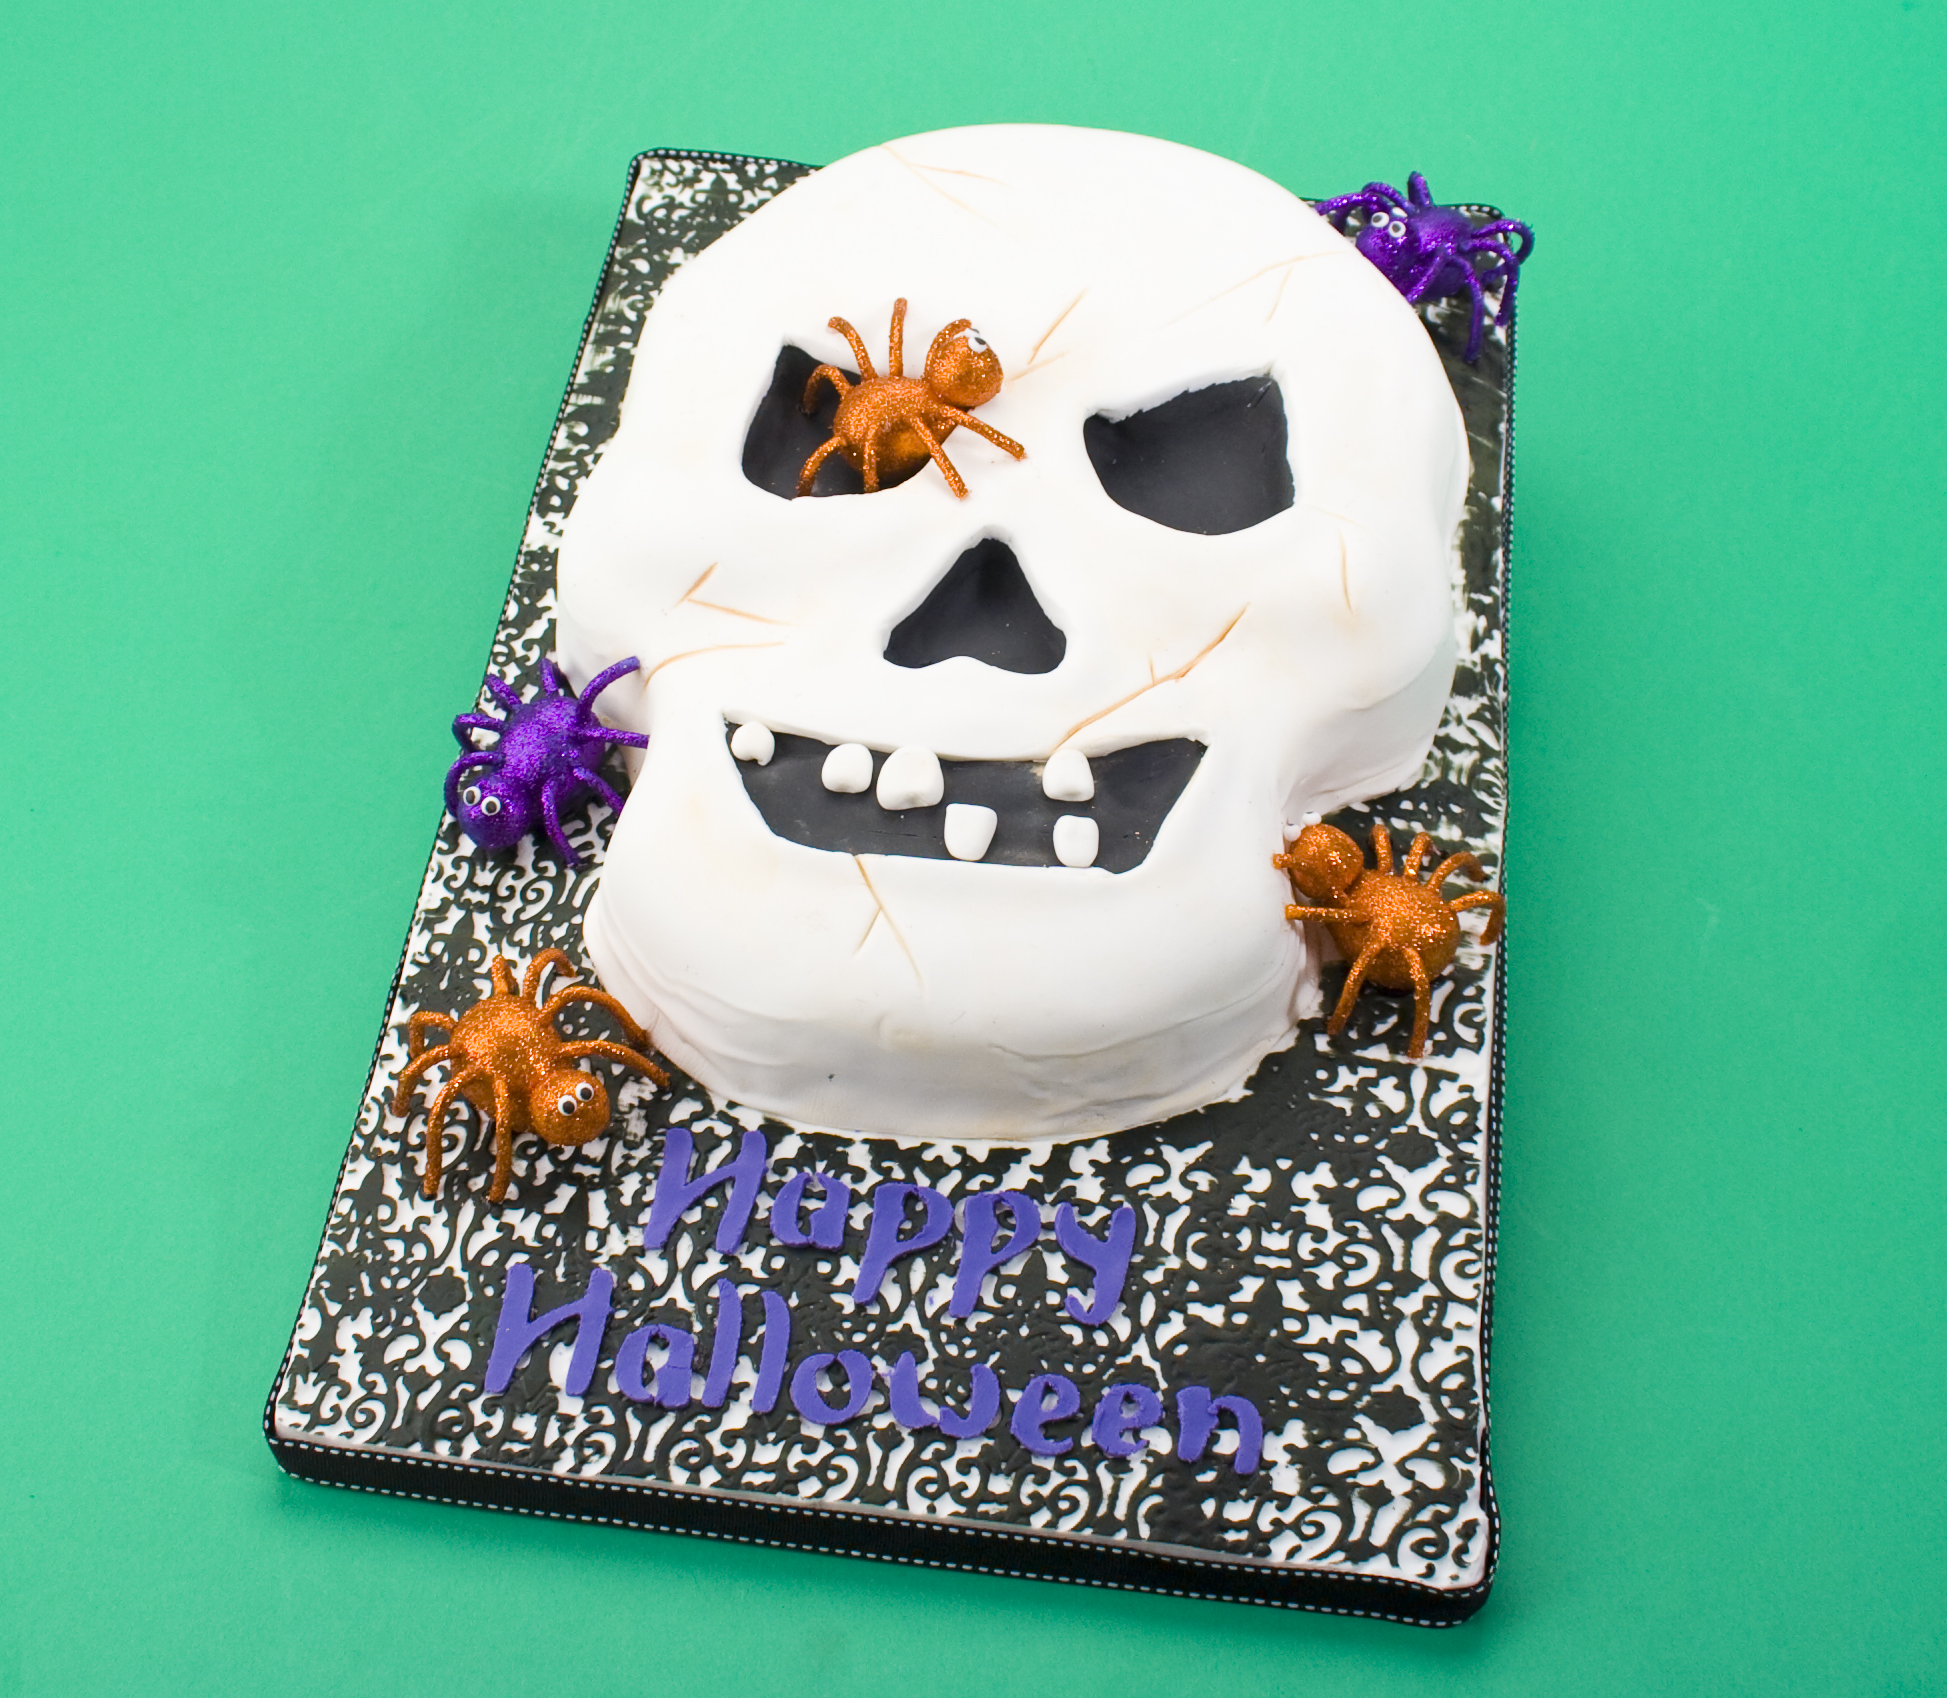 I Went As A Spooky Scary Skeleton Cake! (It's My Cake Day